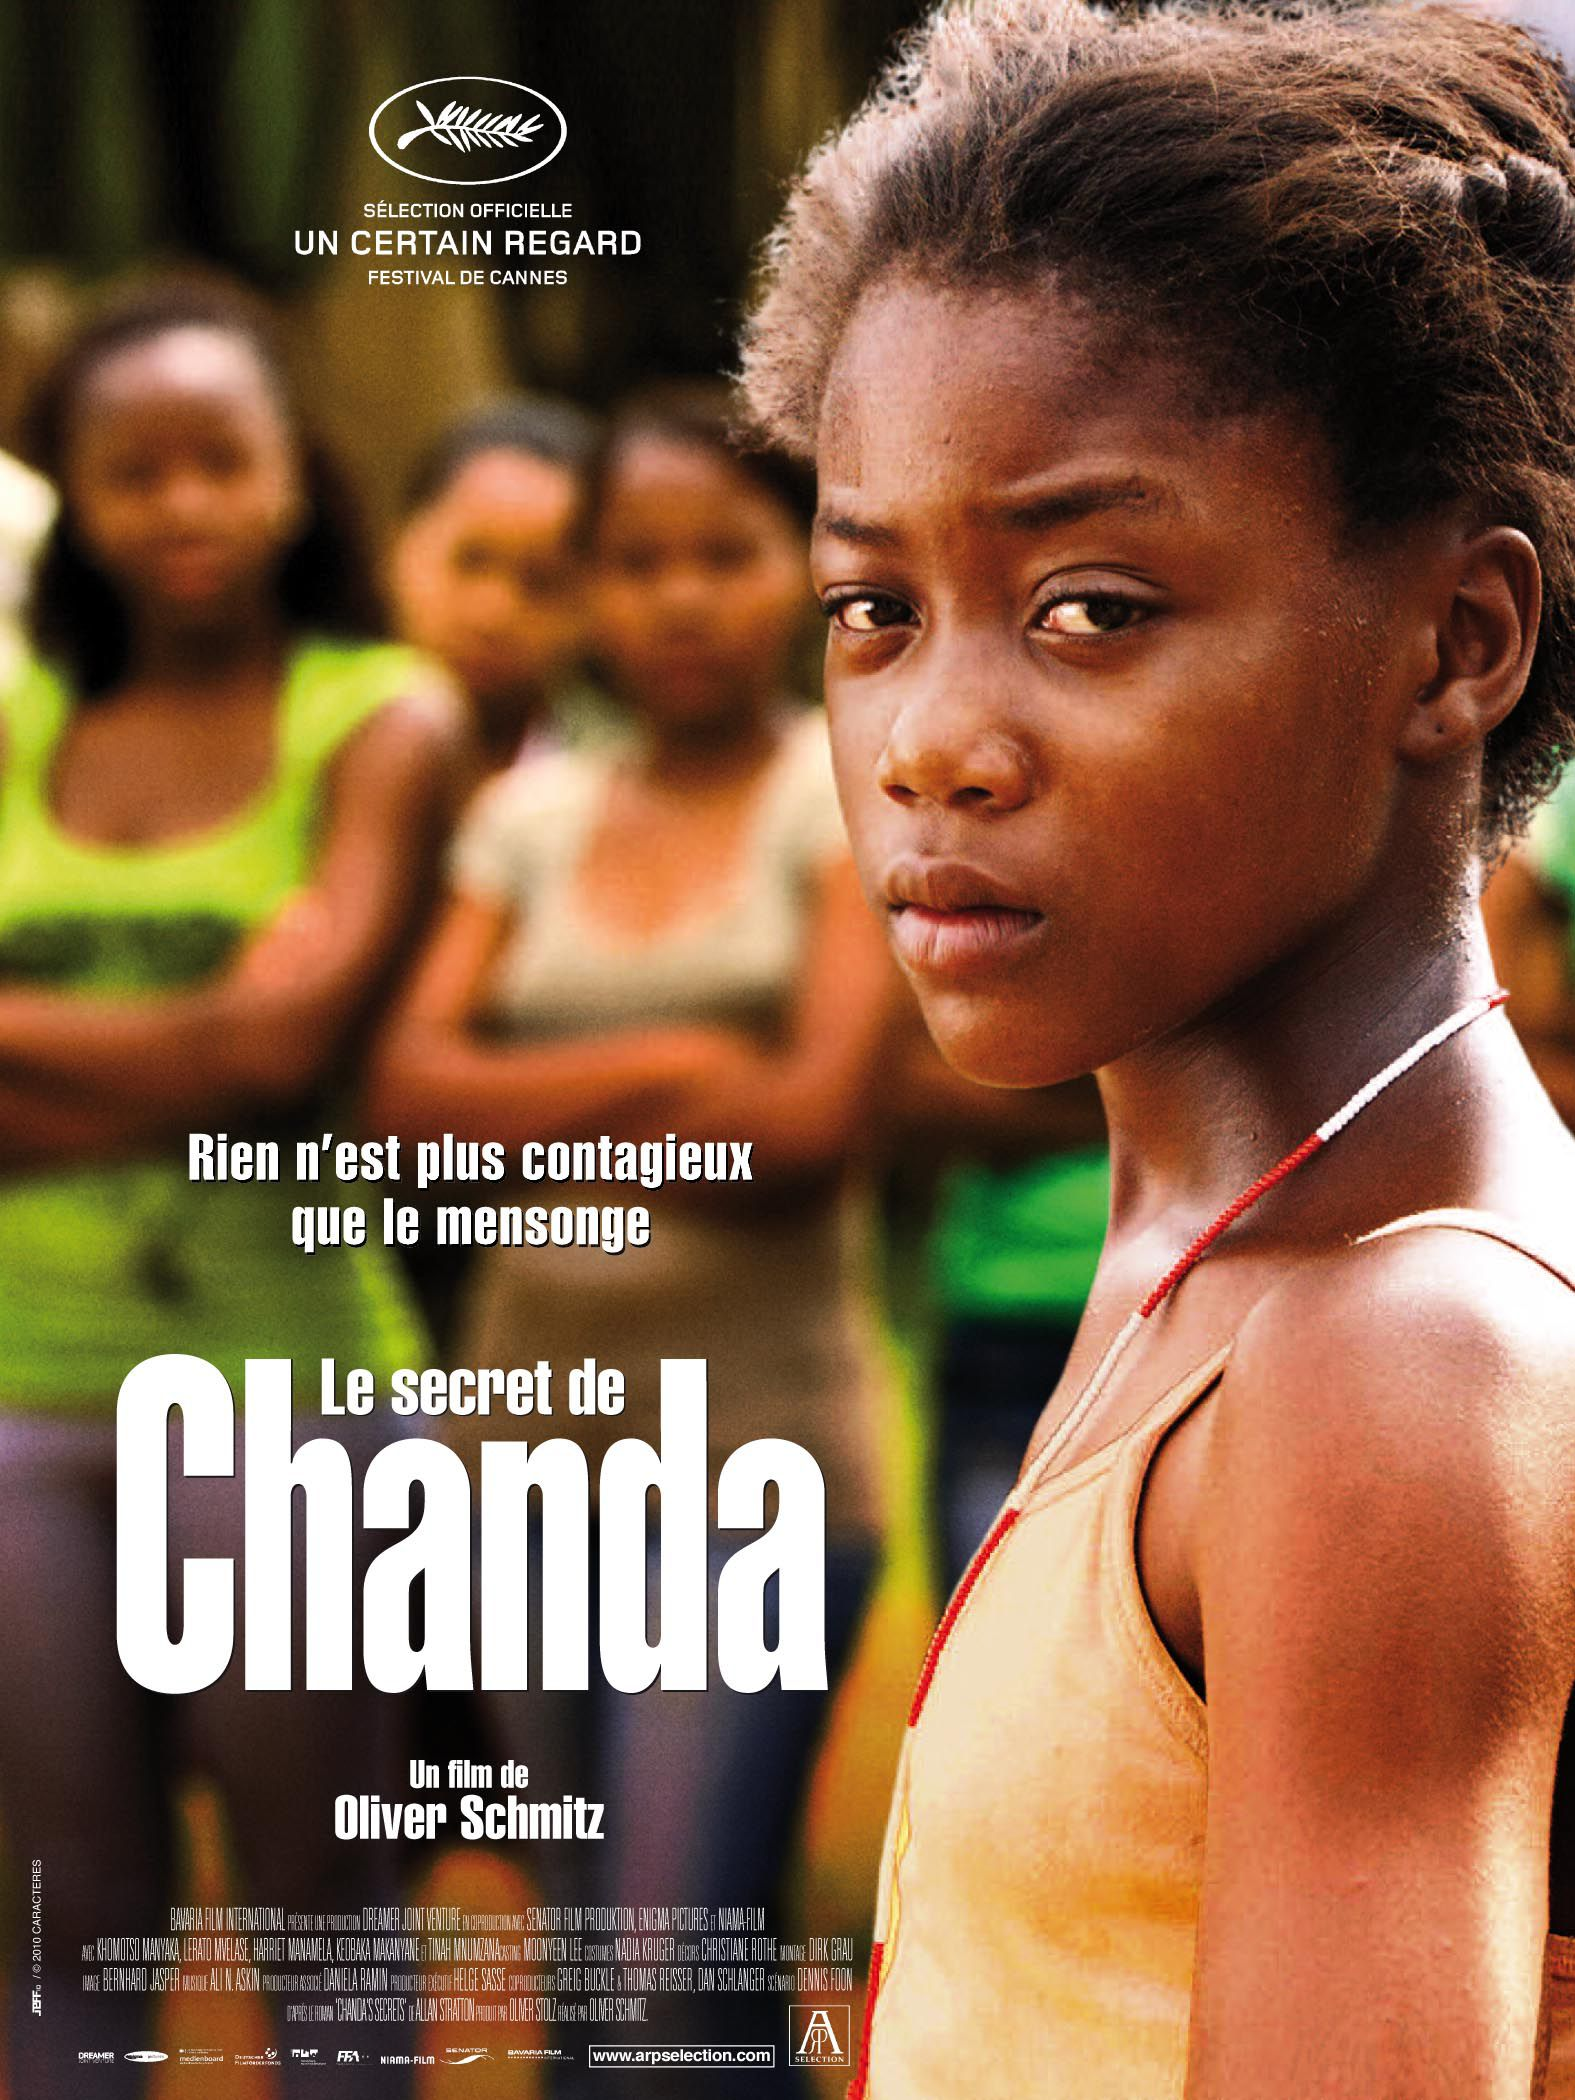 Le Secret de Chanda - Film (2010)